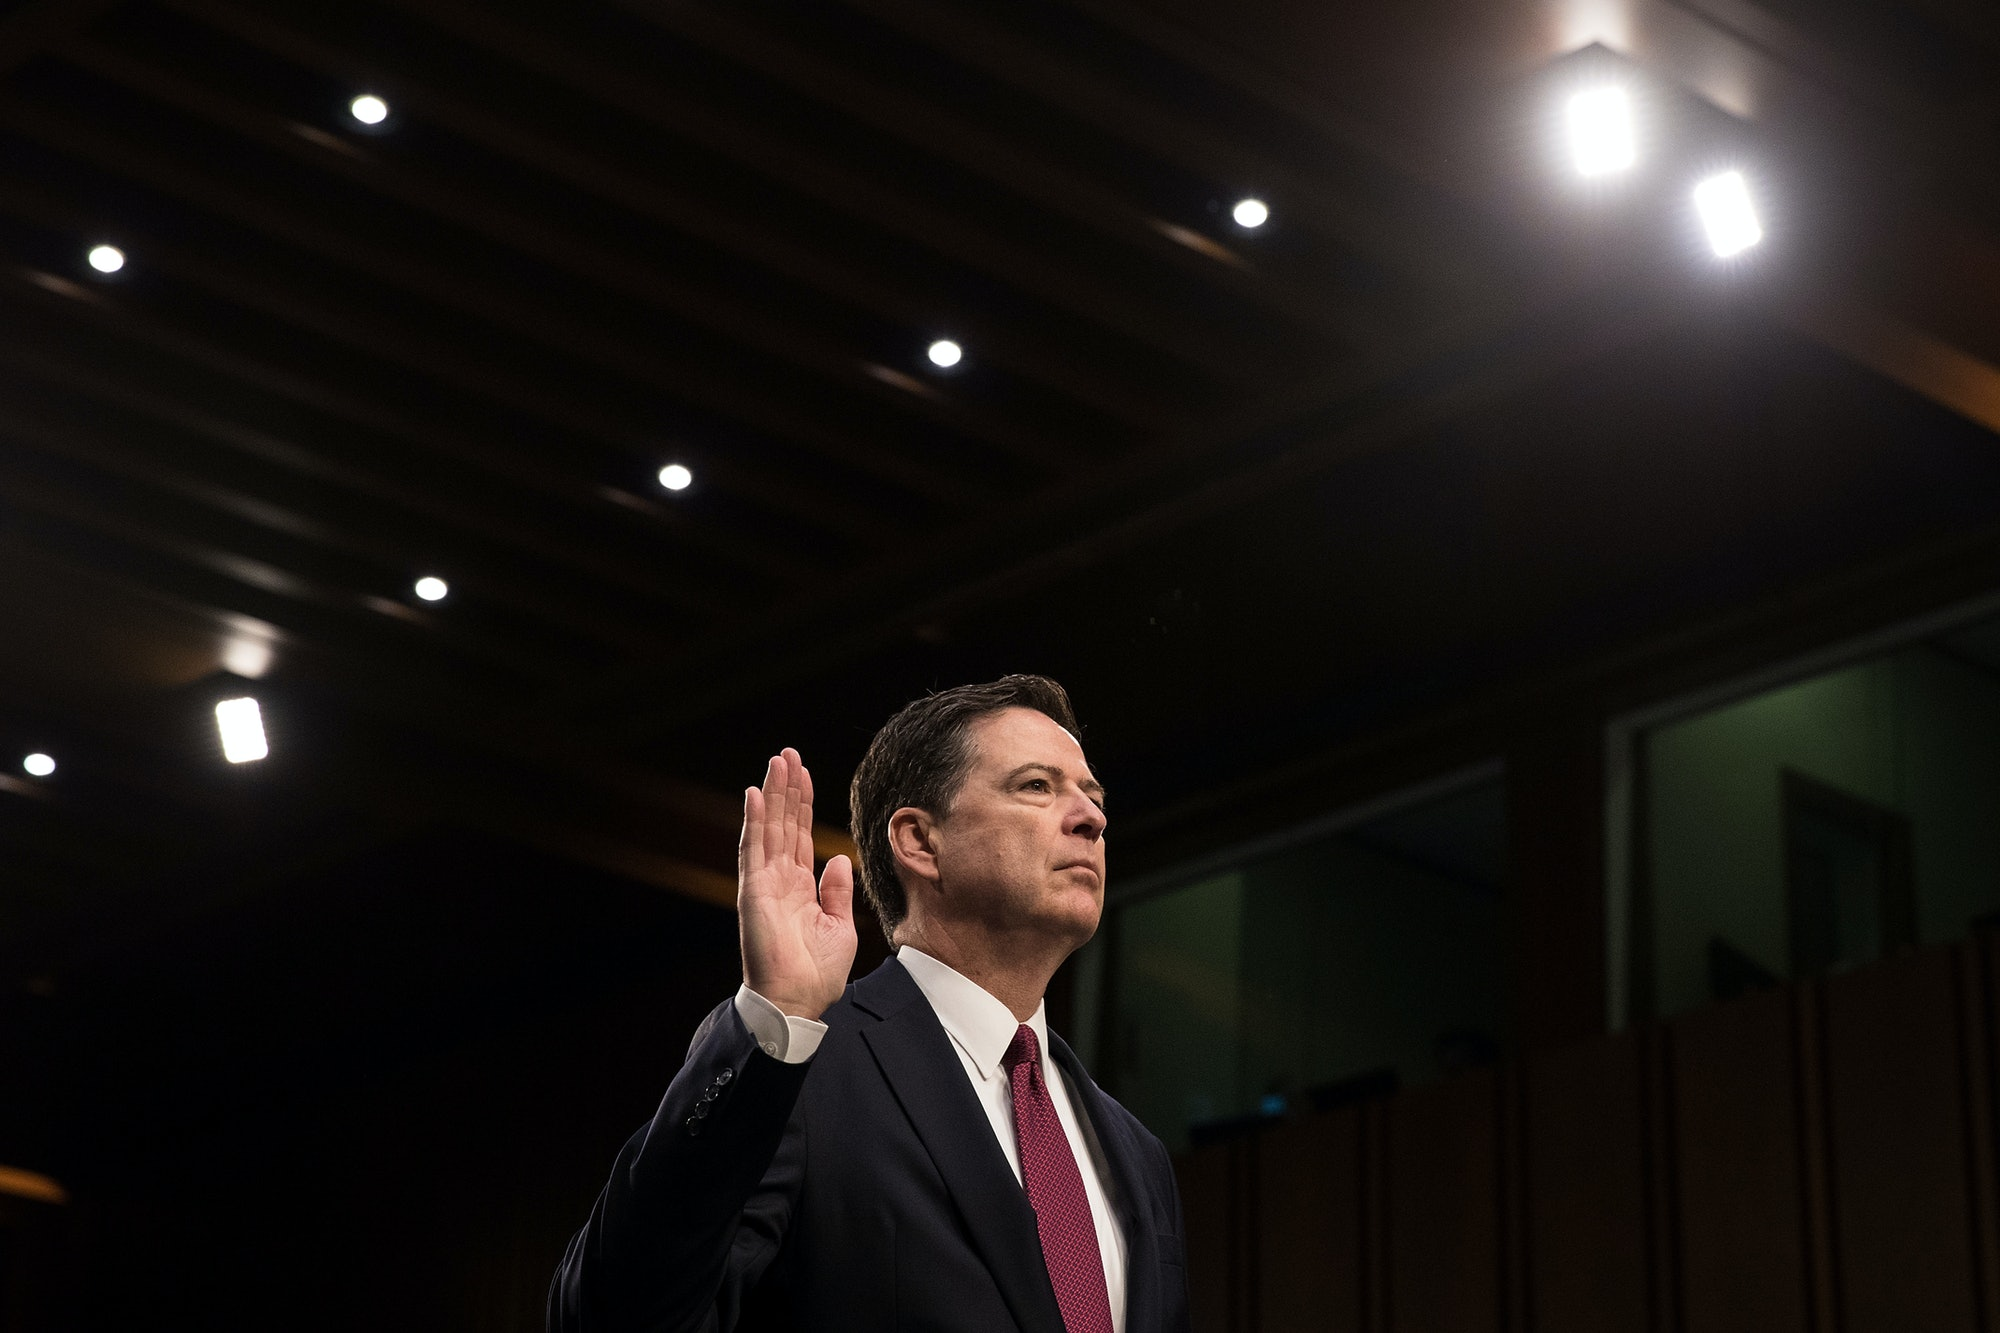 WASHINGTON, DC - JUNE 08: Former FBI Director James Comey is sworn in before the Senate Intelligence Committee in the Hart Senate Office Building on Capitol Hill June 8, 2017 in Washington, DC. Comey said that President Donald Trump pressured him to drop the FBI's investigation into former National Security Advisor Michael Flynn and demanded Comey's loyalty during the one-on-one meetings he had with president. (Photo by Drew Angerer/Getty Images)